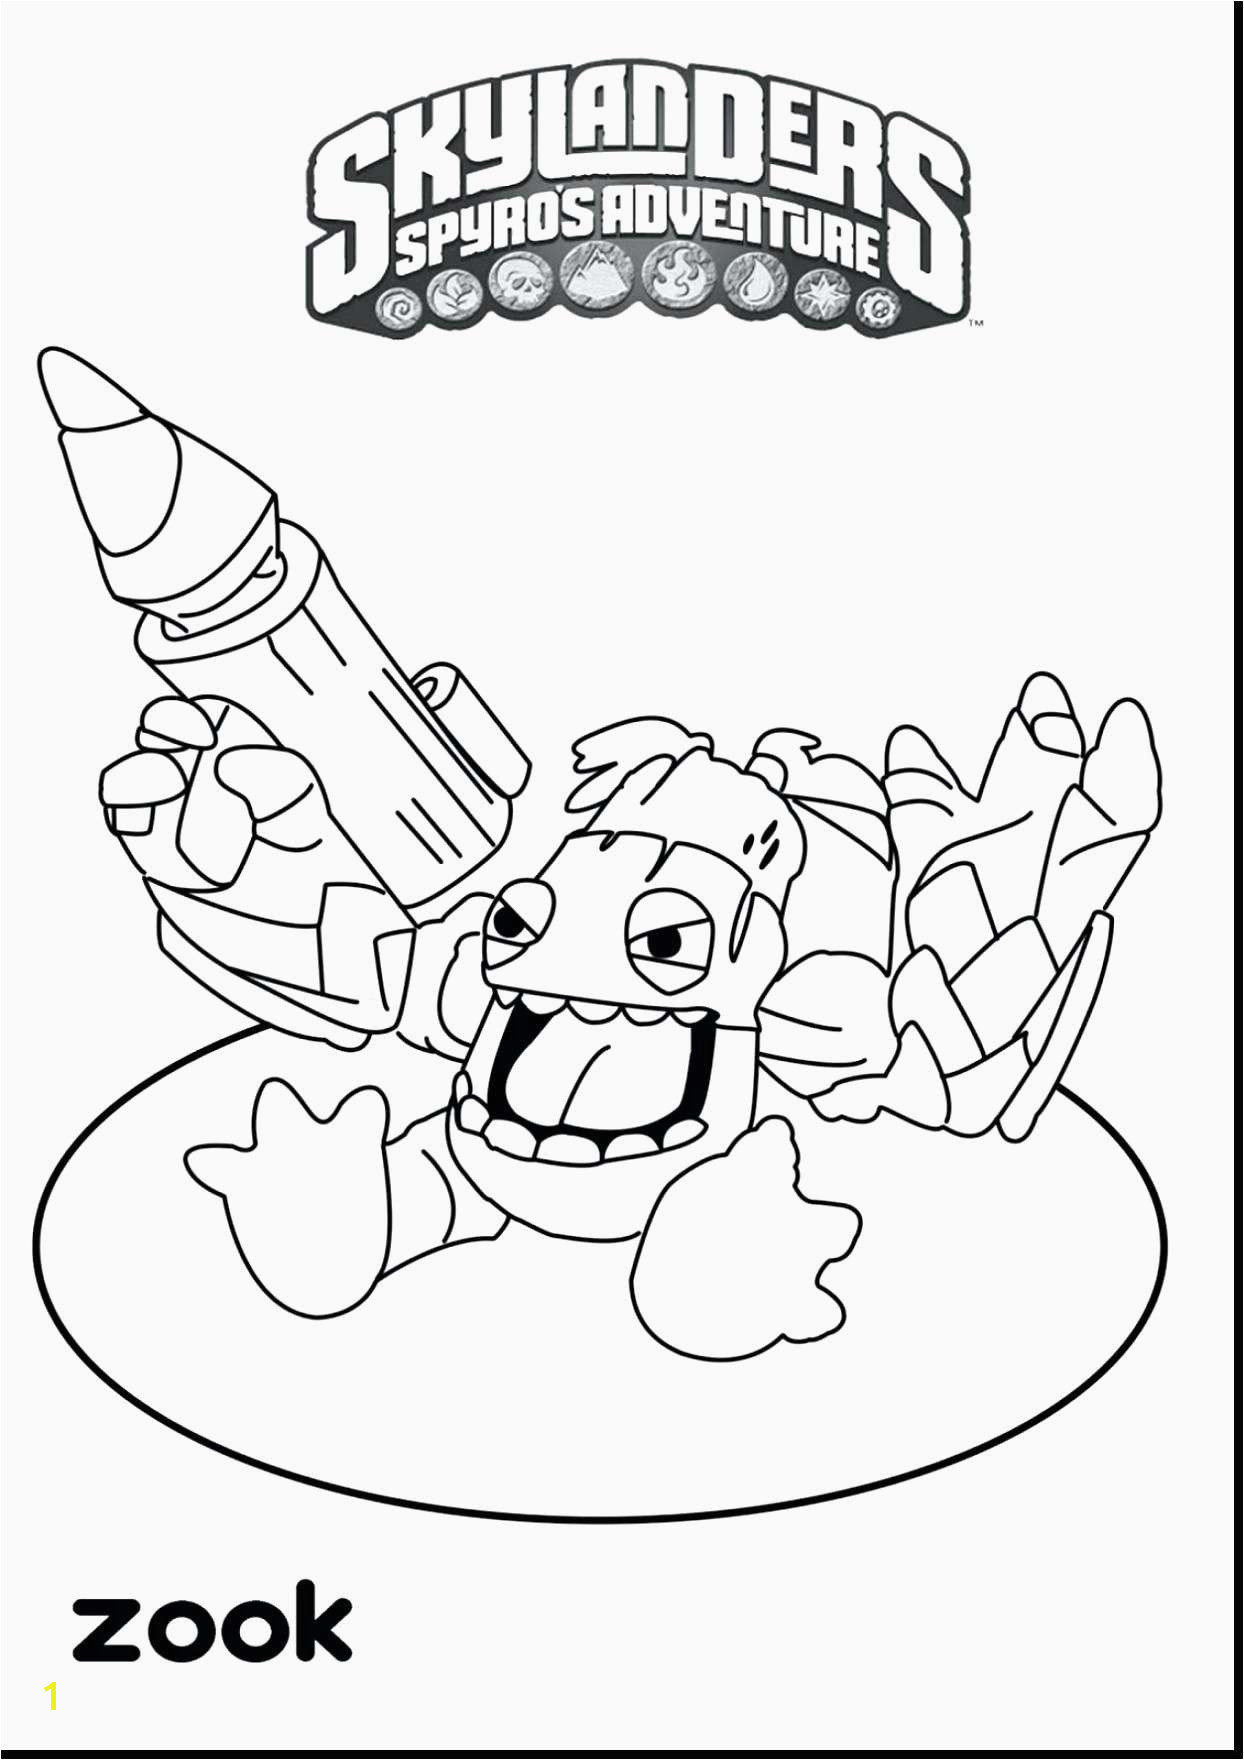 Coloring Pages for Nursery Coloring Pages Coloring Pages Inspirierend Malvorlagen Pokemon Free Pokemon Coloring Pages